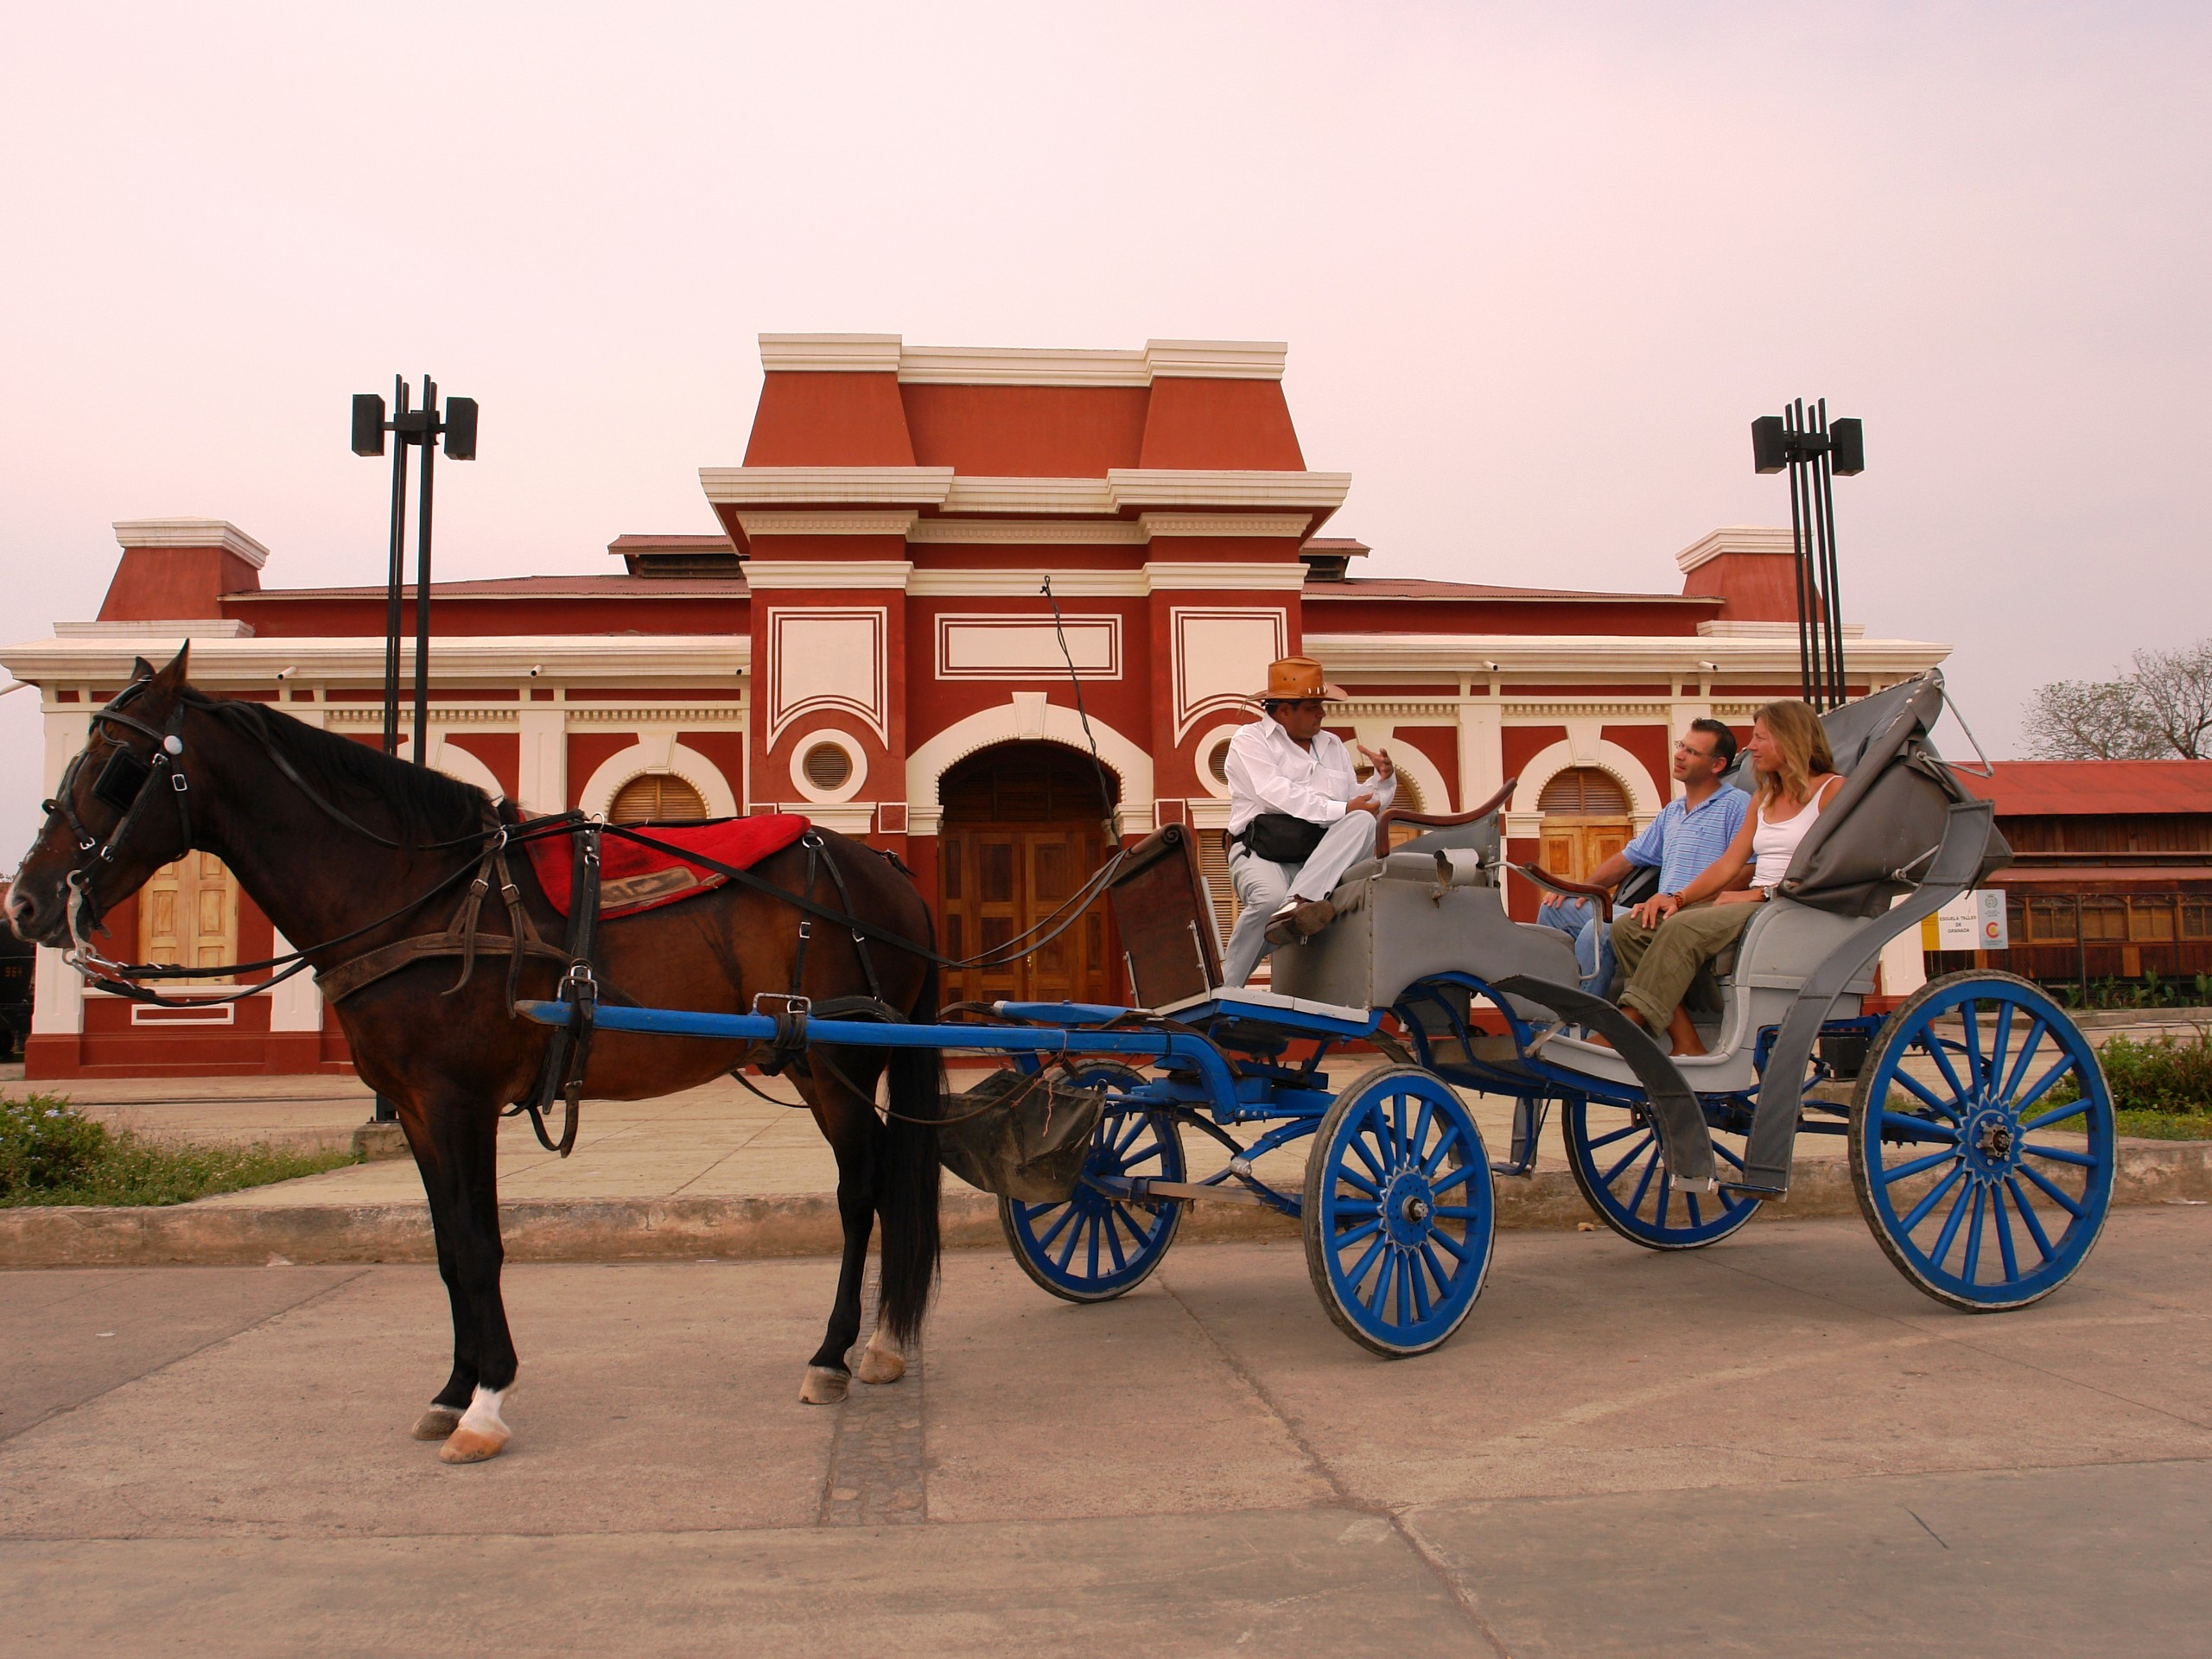 Granada - Horse drawn carriage by Old train station